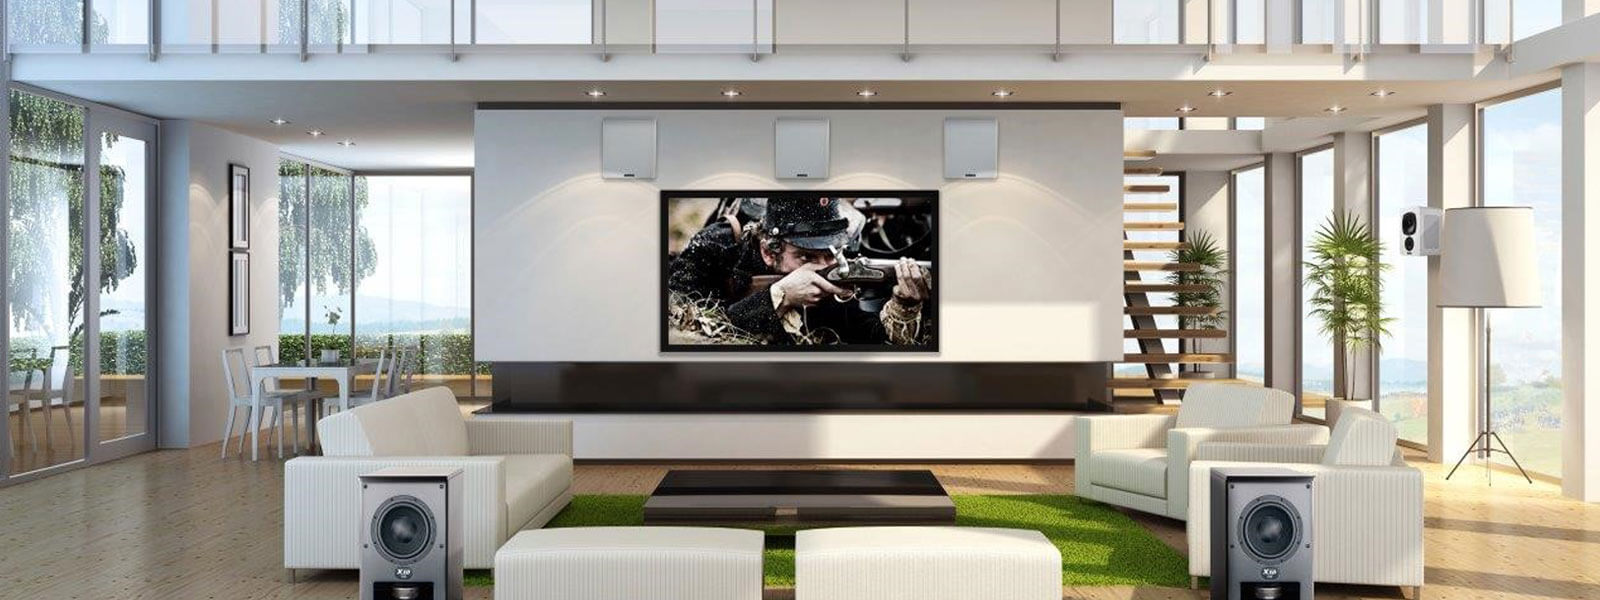 Gecko Home cinema and media room in architectural lounge